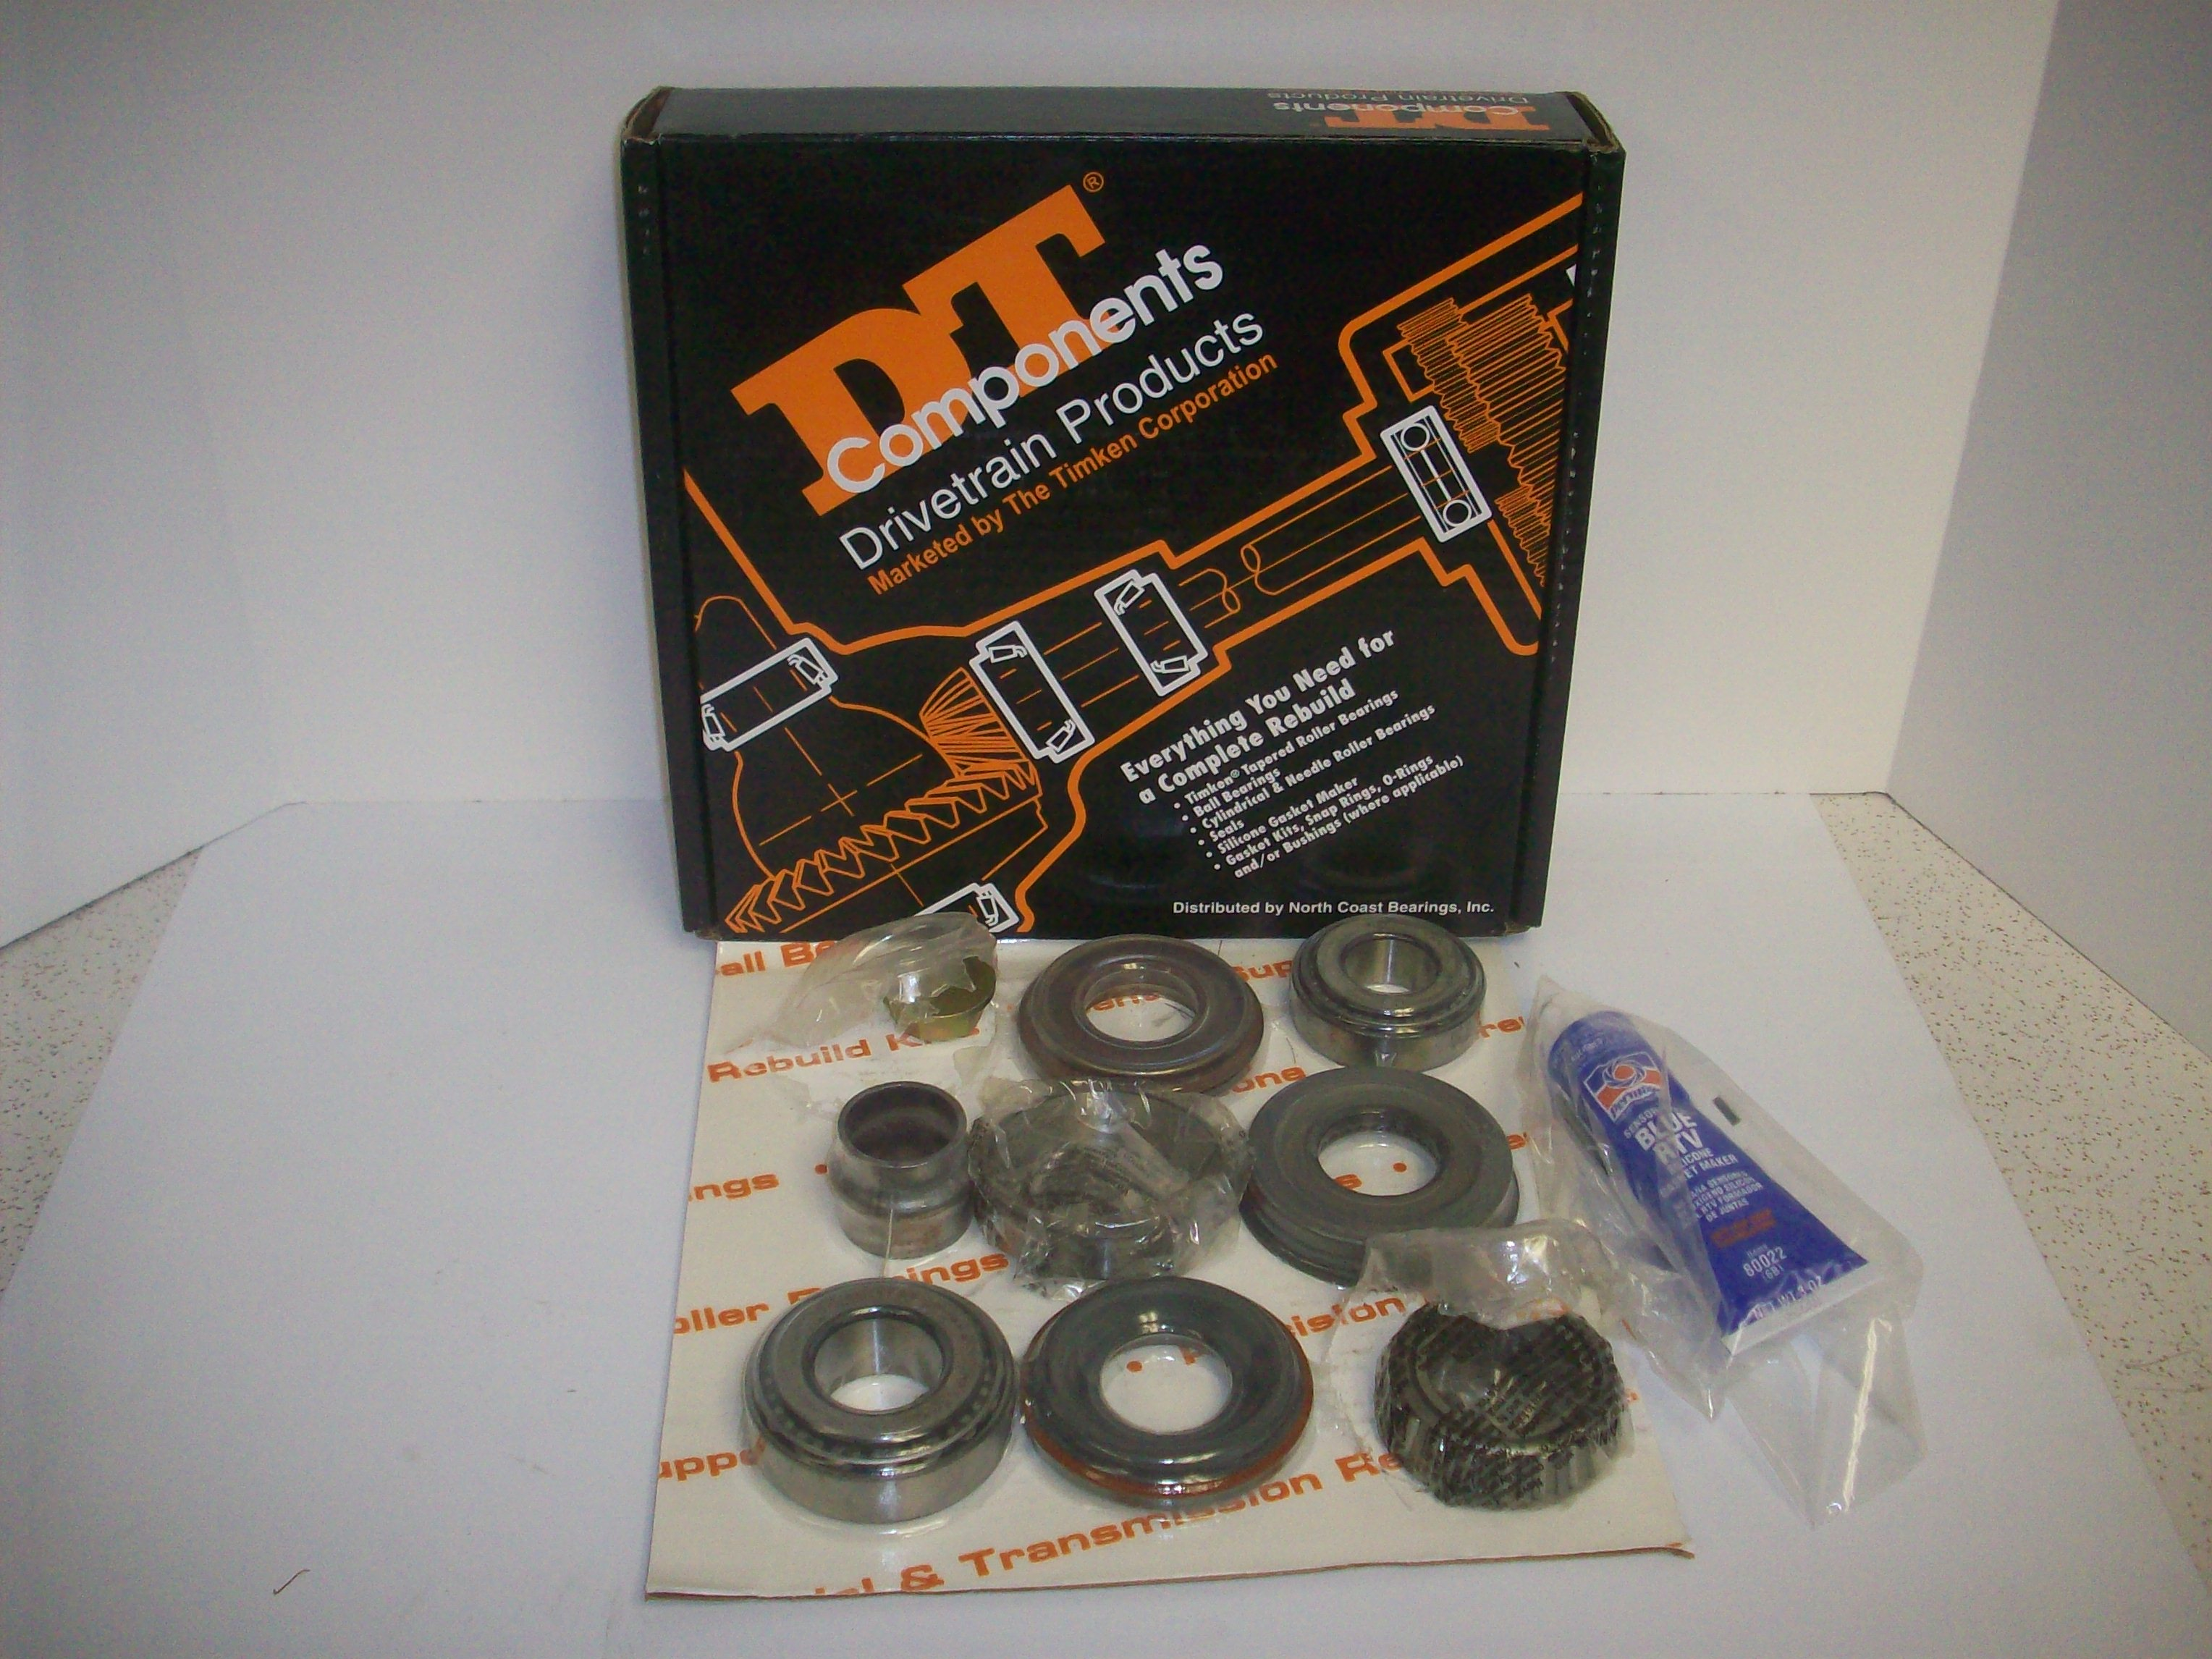 Bearing Kit DRK-334TJ